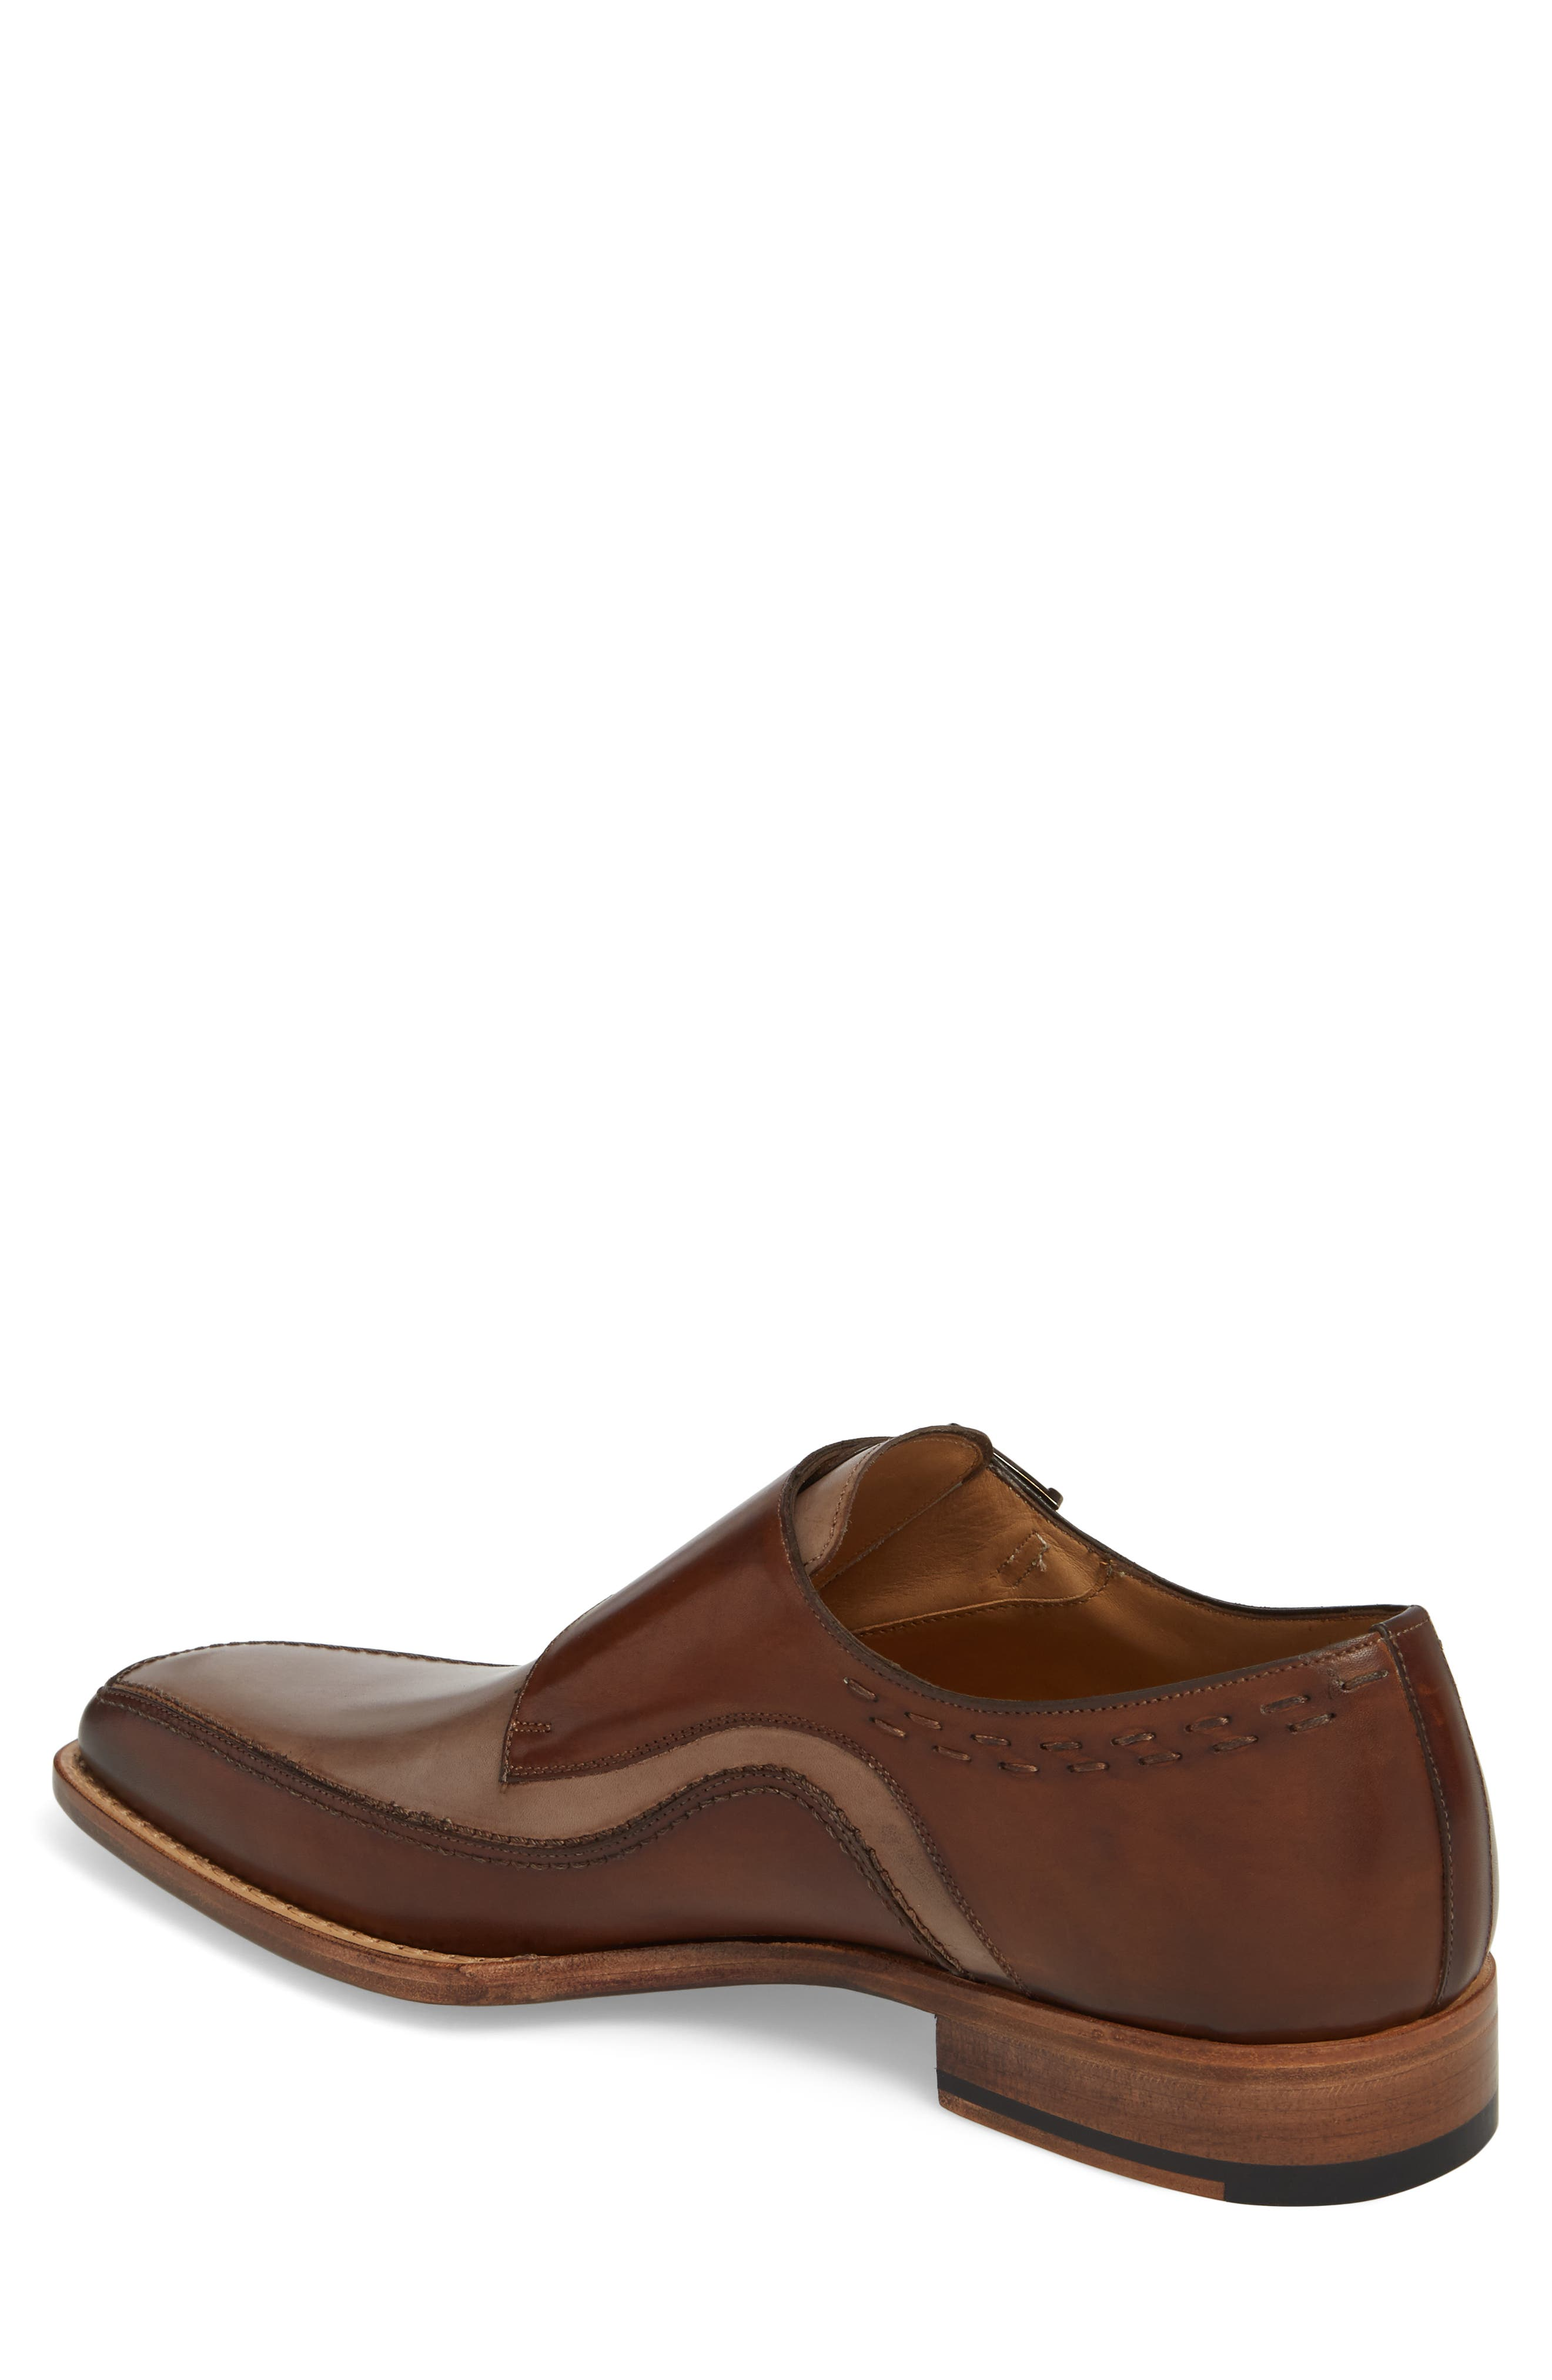 Magno Double Monk Strap Shoe,                             Alternate thumbnail 2, color,                             Brown Leather